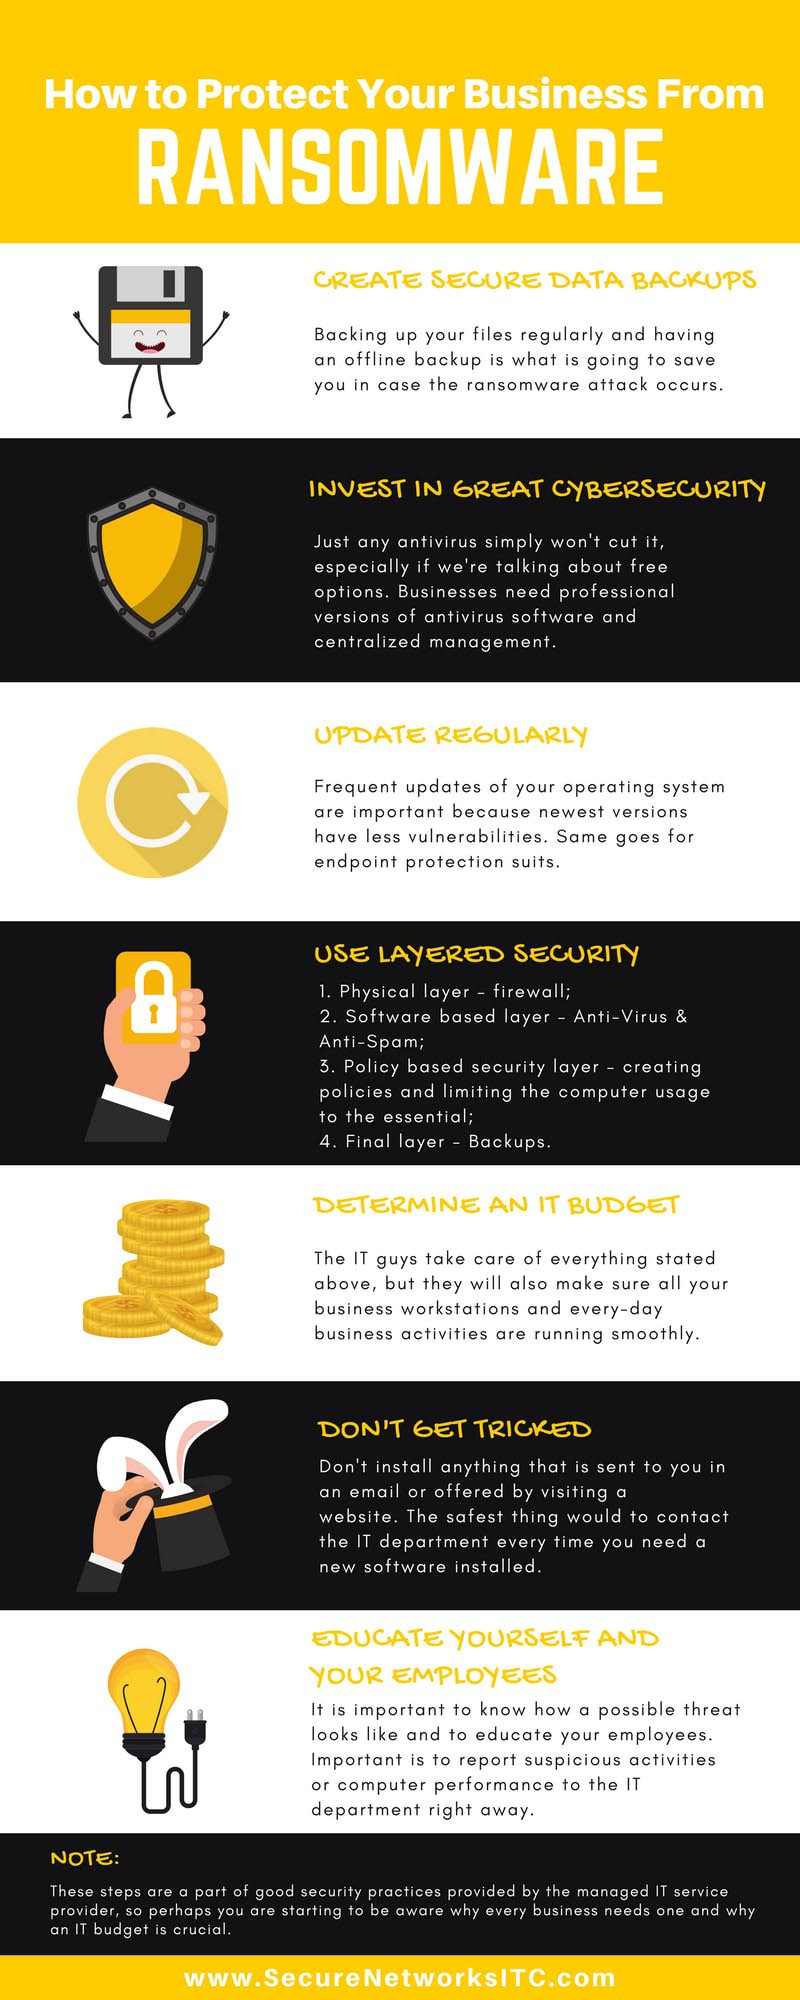 How-to-protect-Your-Business-from-Ransomware-Infographic New York